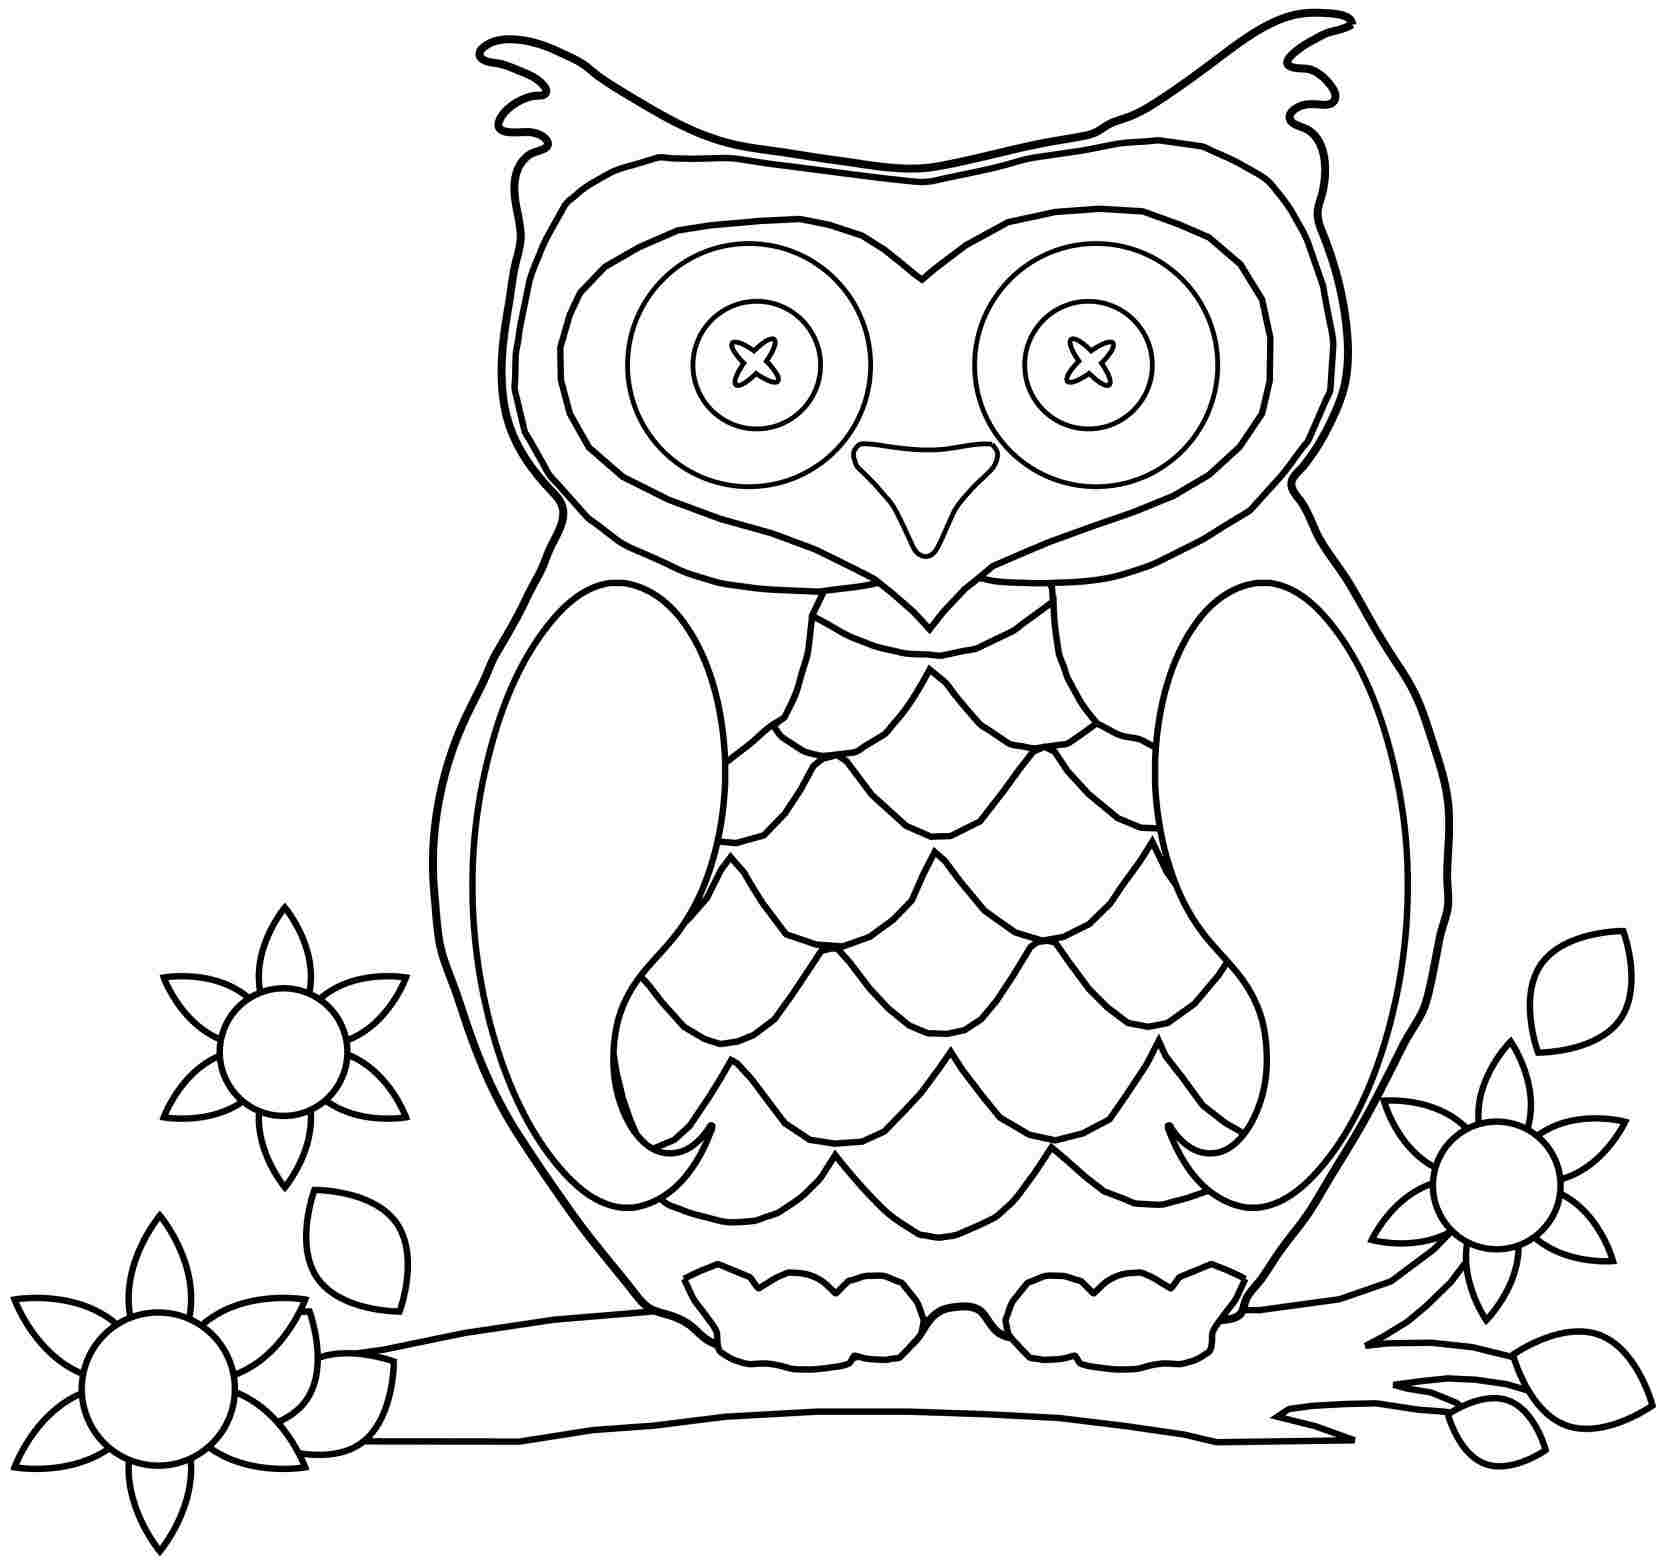 Custom Coloring Pages Gallery 15s - Free For Children